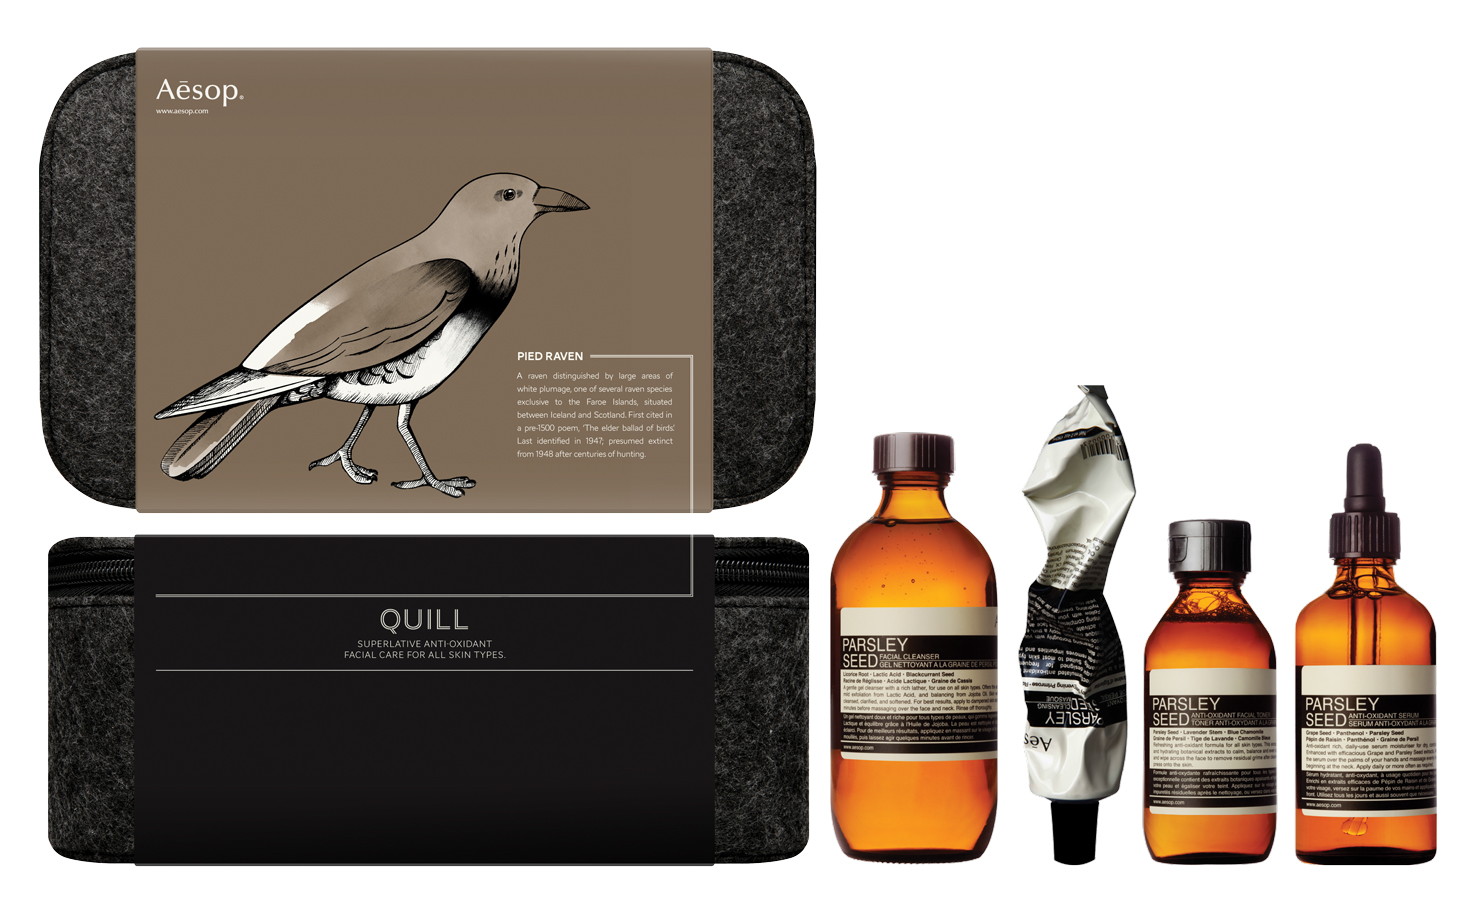 AESOP-2012-KIT-LARGE-QUILL-WITH-COLOUR-PRODUCT